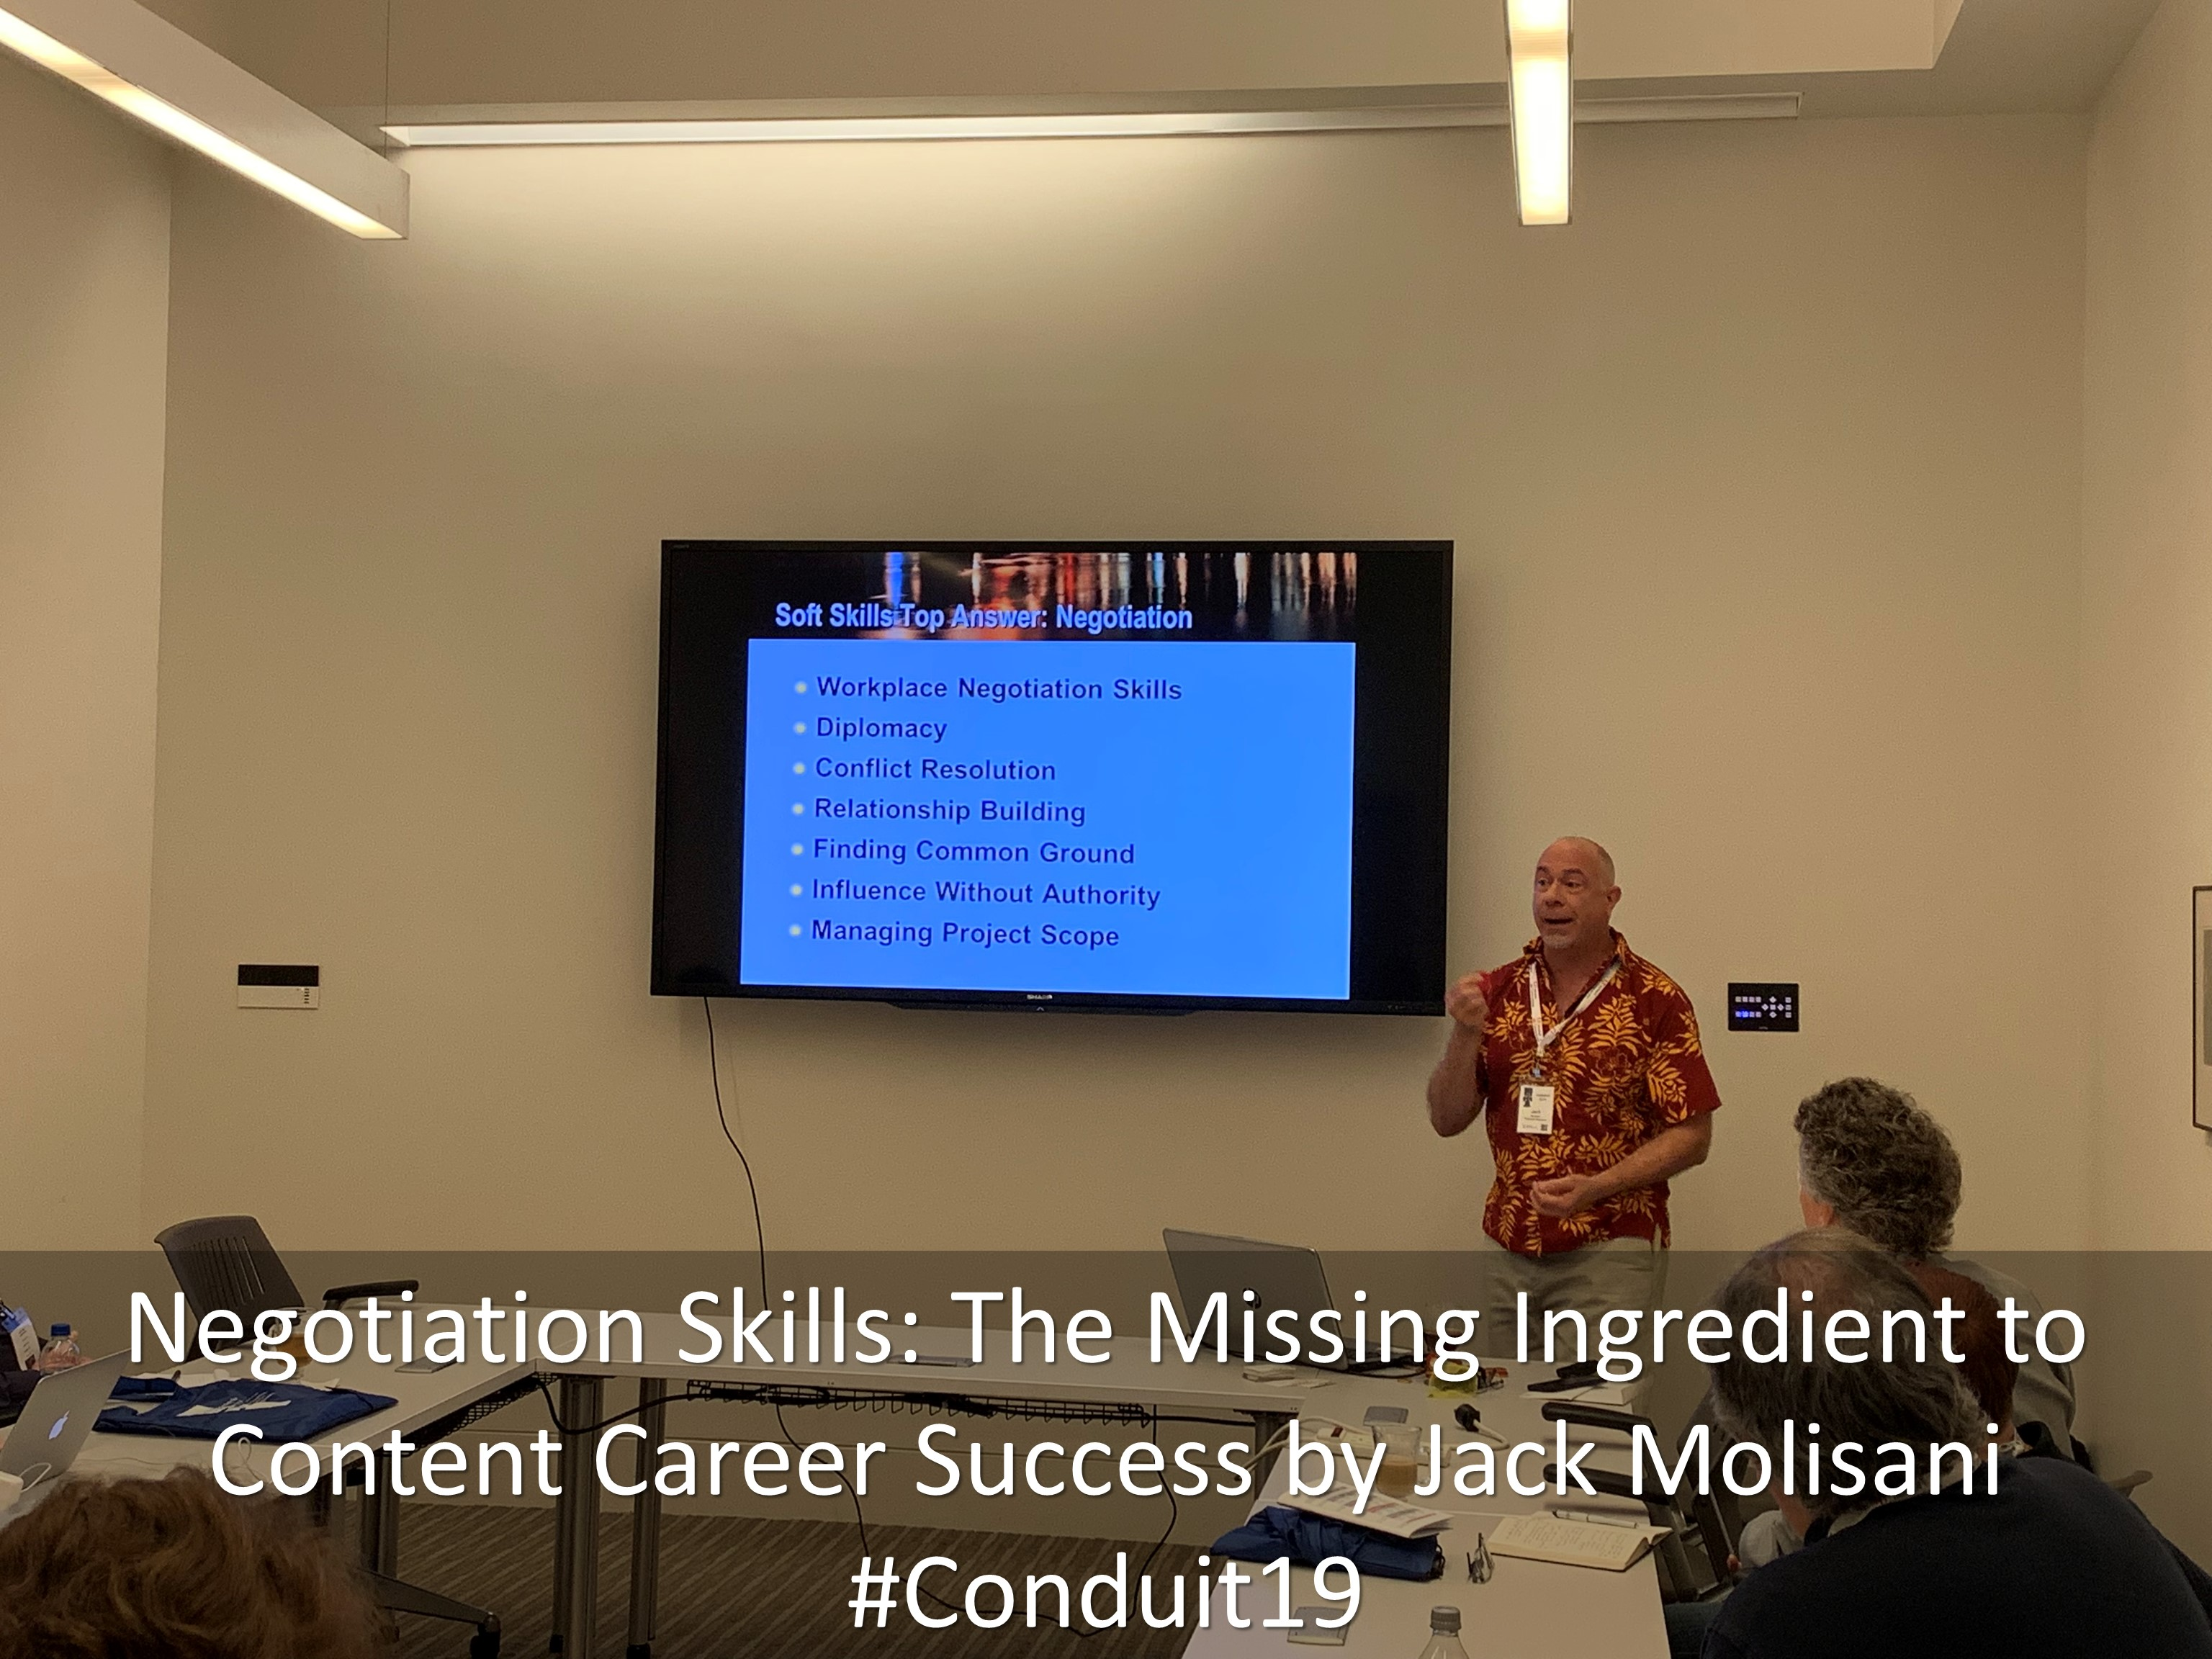 08 Negotiation Skills The Missing Ingredient to Content Career Success by Jack Molisani Conduit19